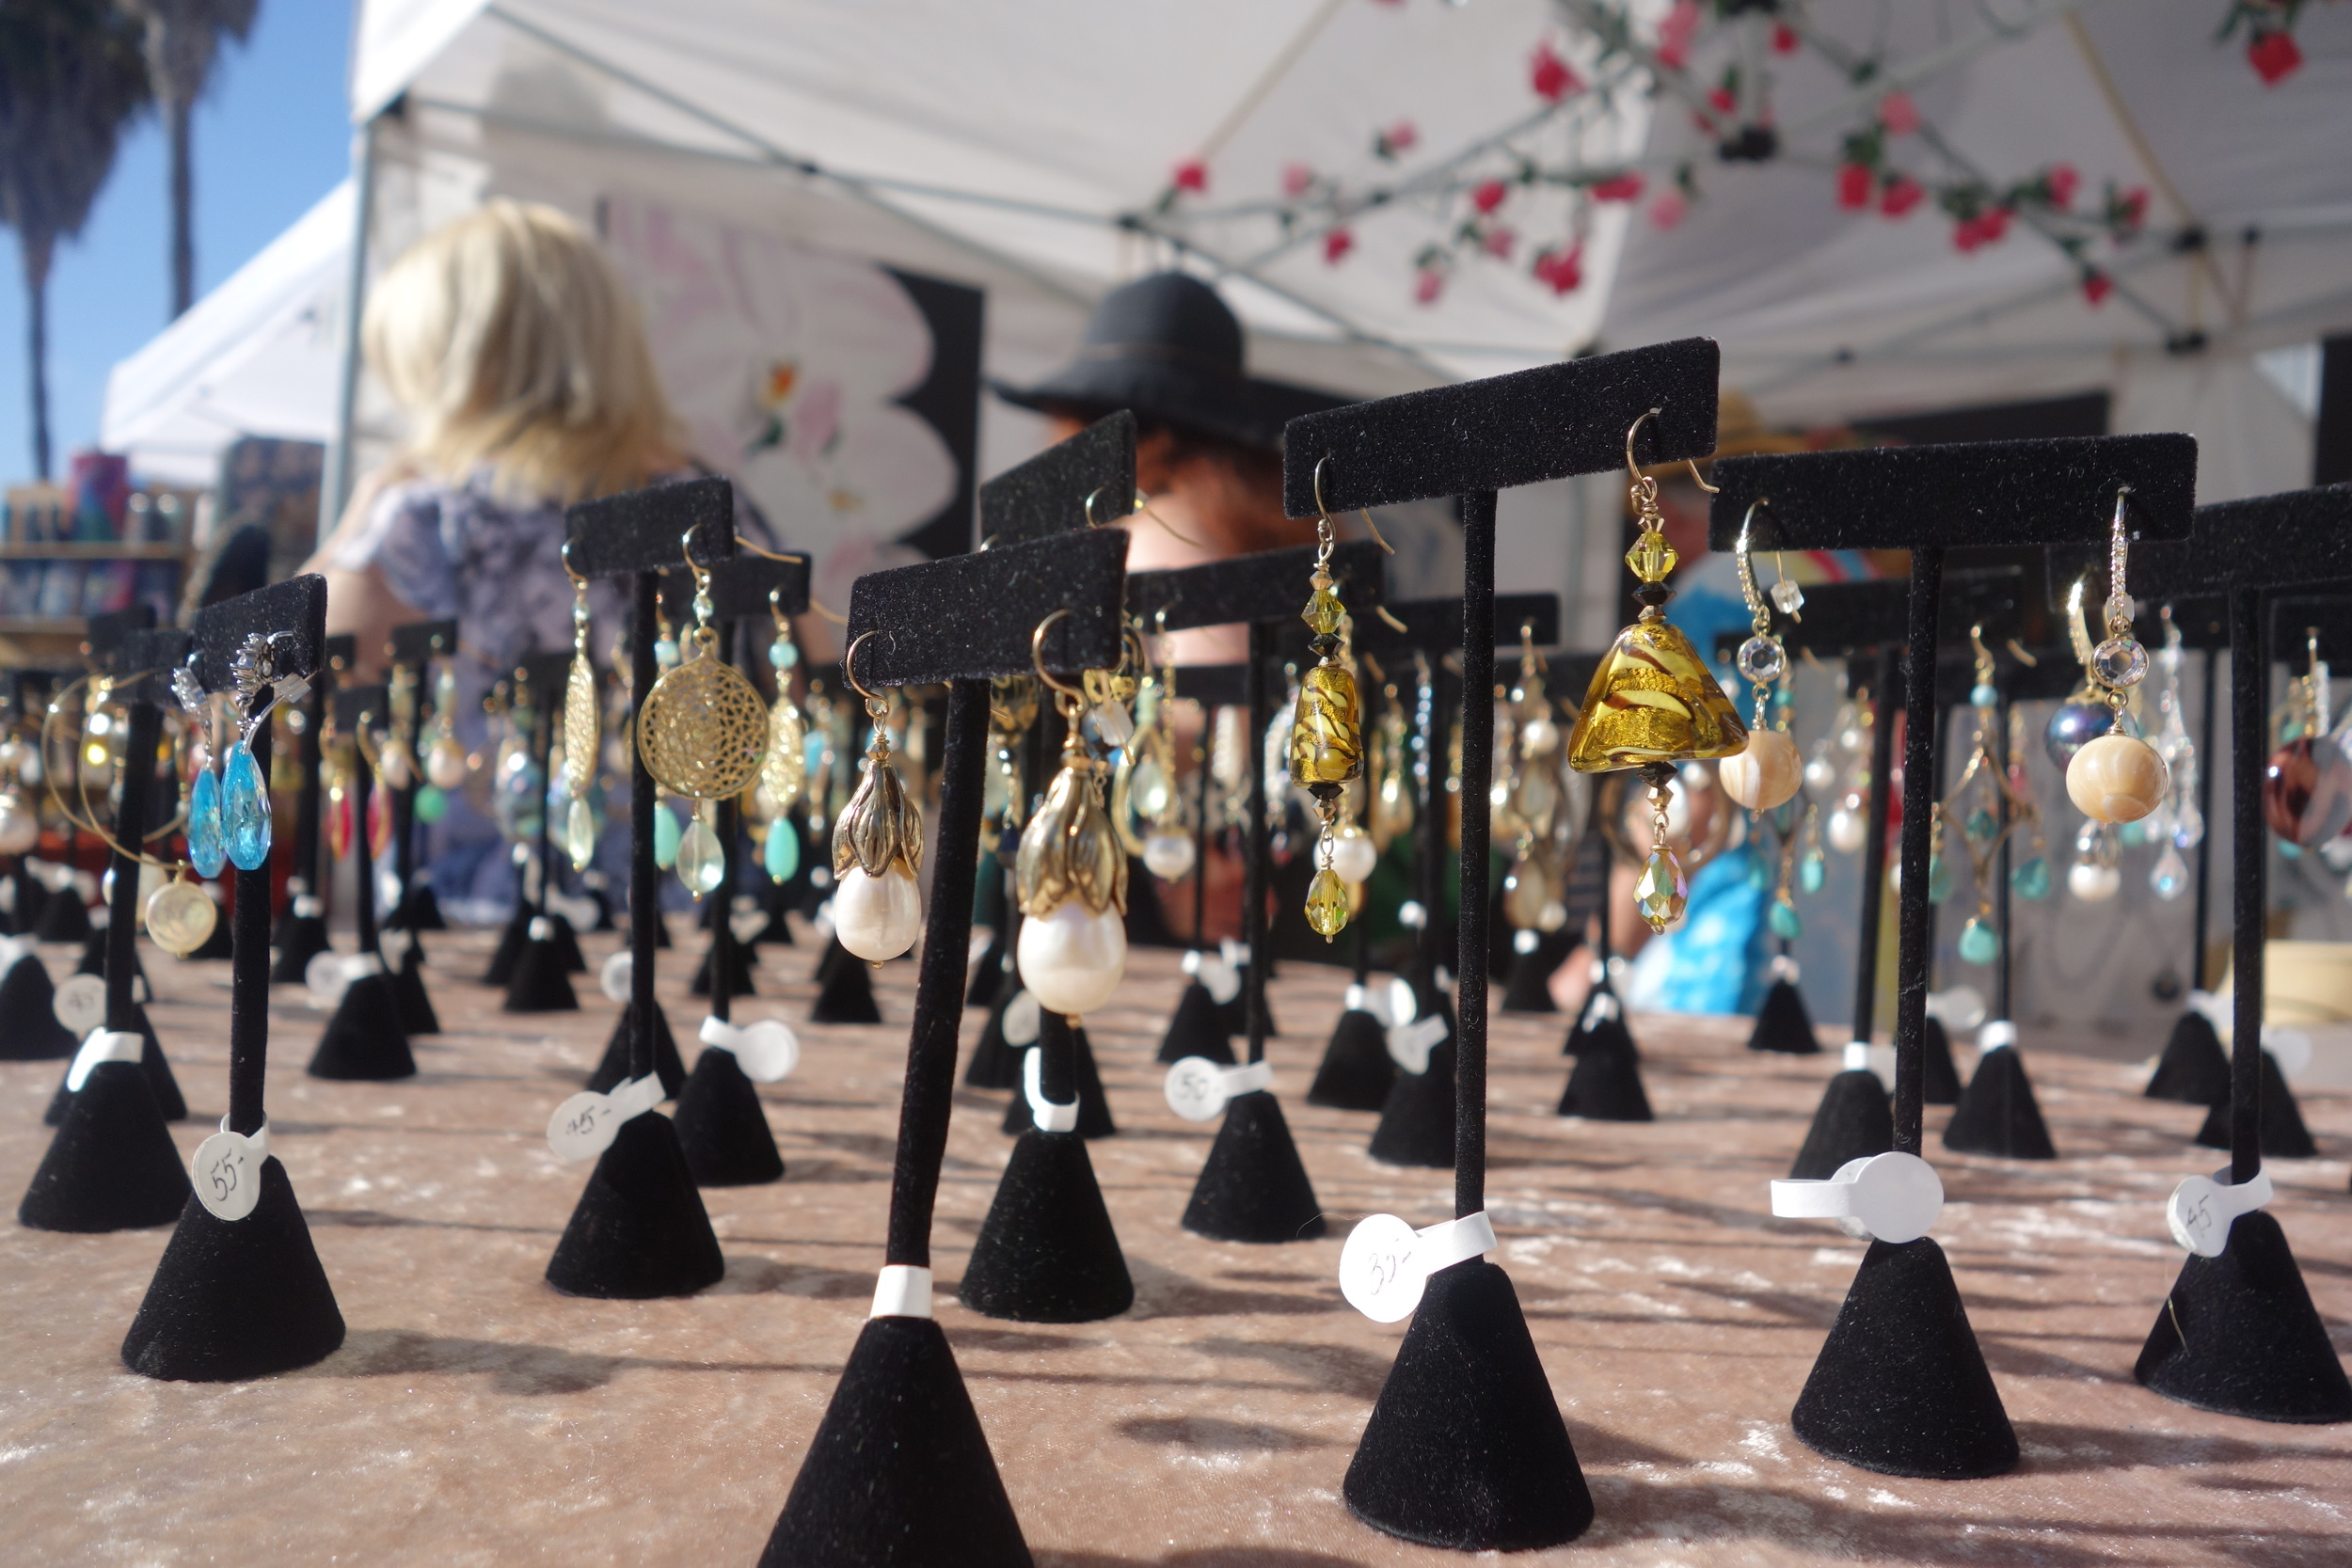 Earrings display at the Abbot Kinney Festival. (Photo by Nicole Reed)